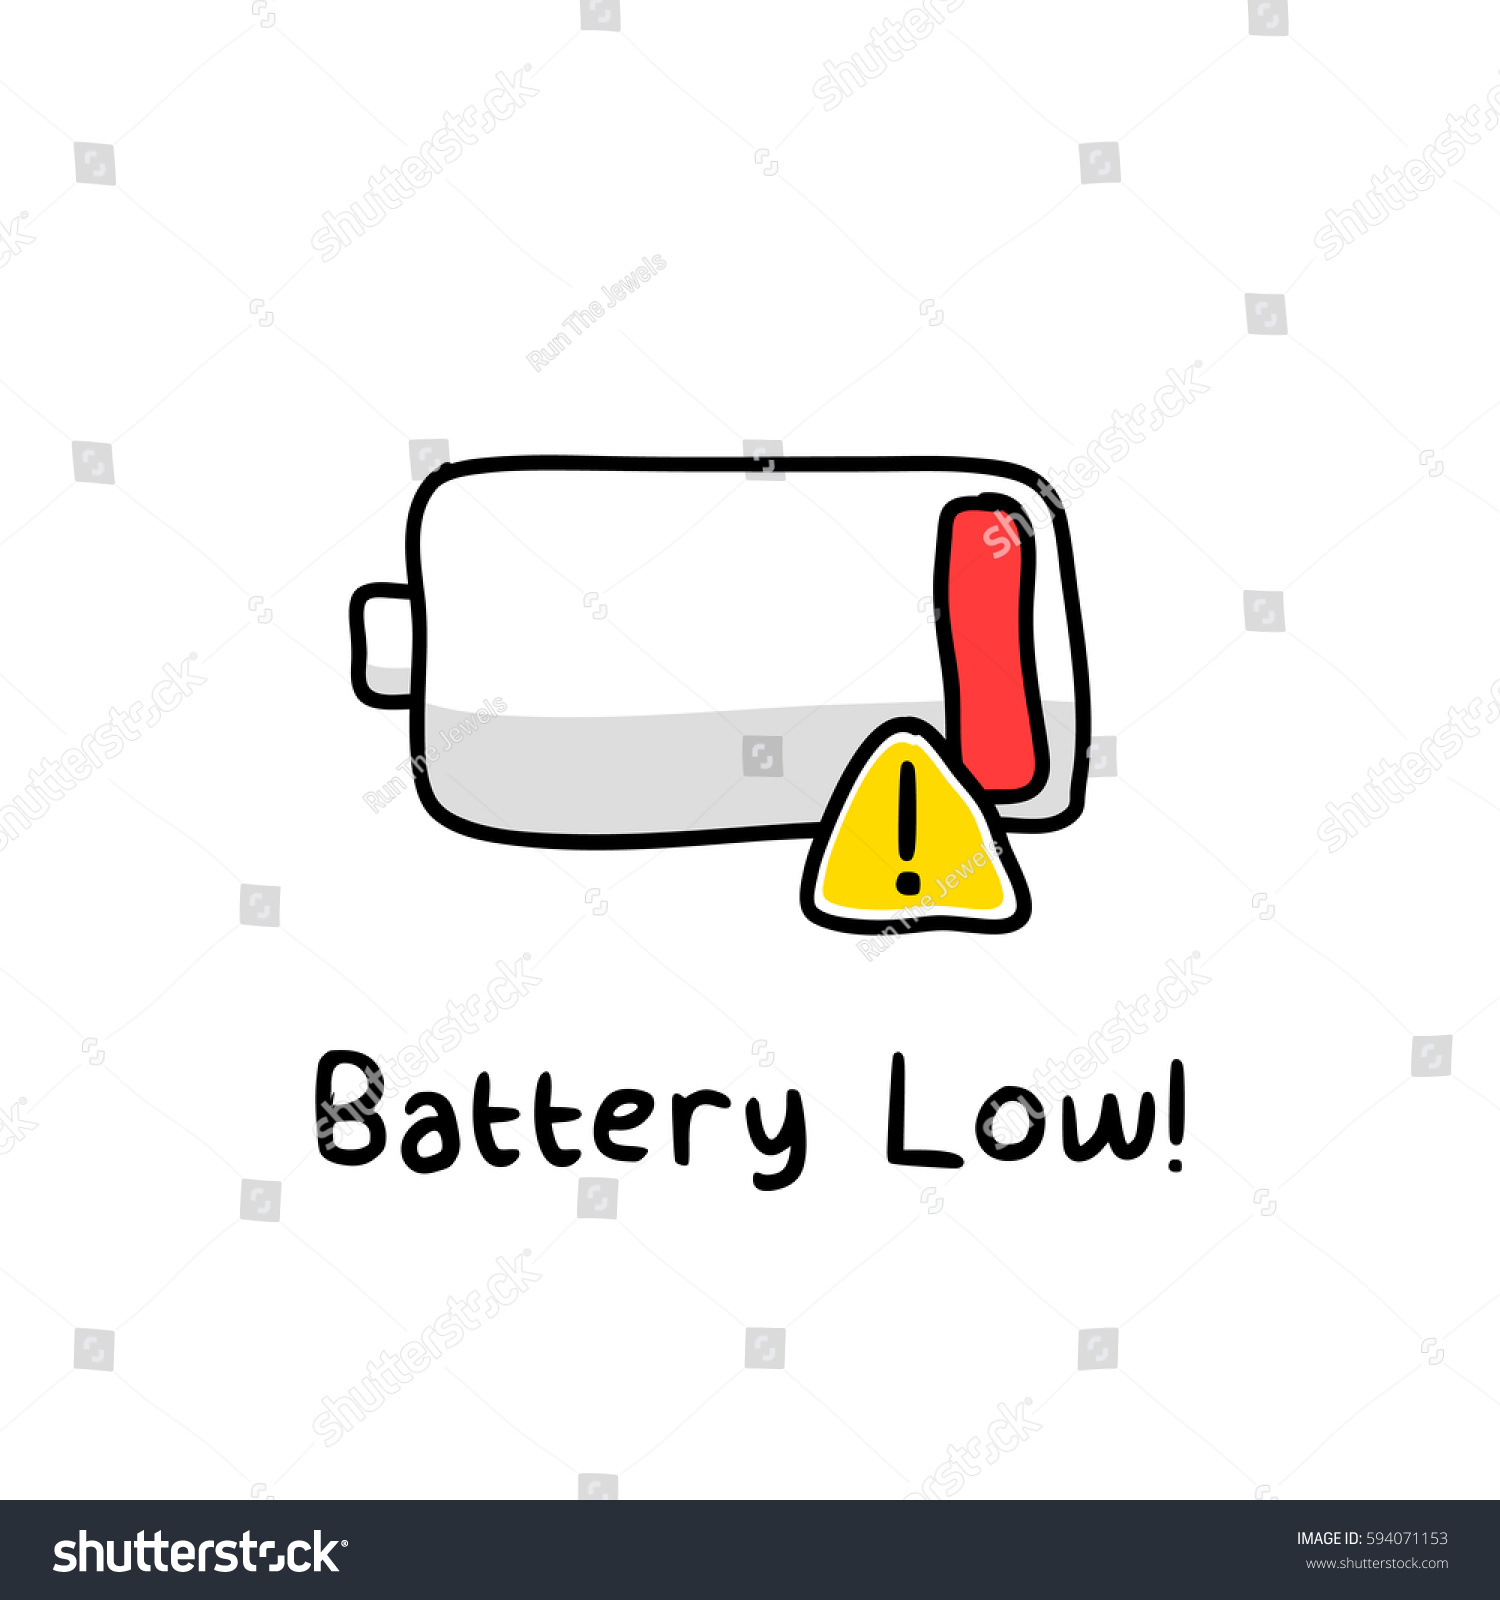 Battery Low Sketch Stock Vector 594071153 - Shutterstock